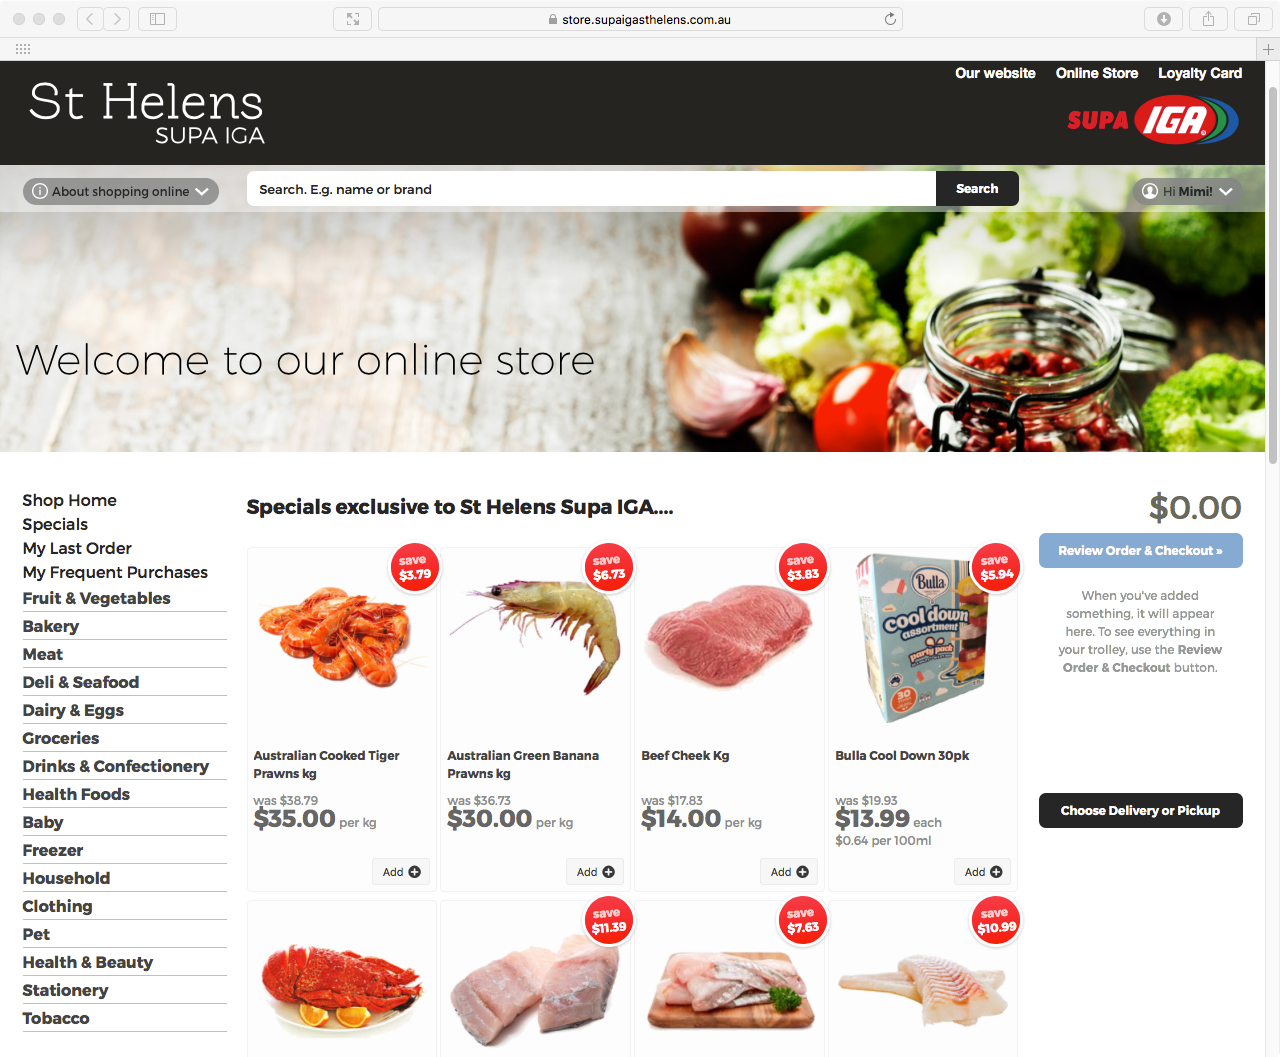 Image showing St Helen's SUPA IGA online store